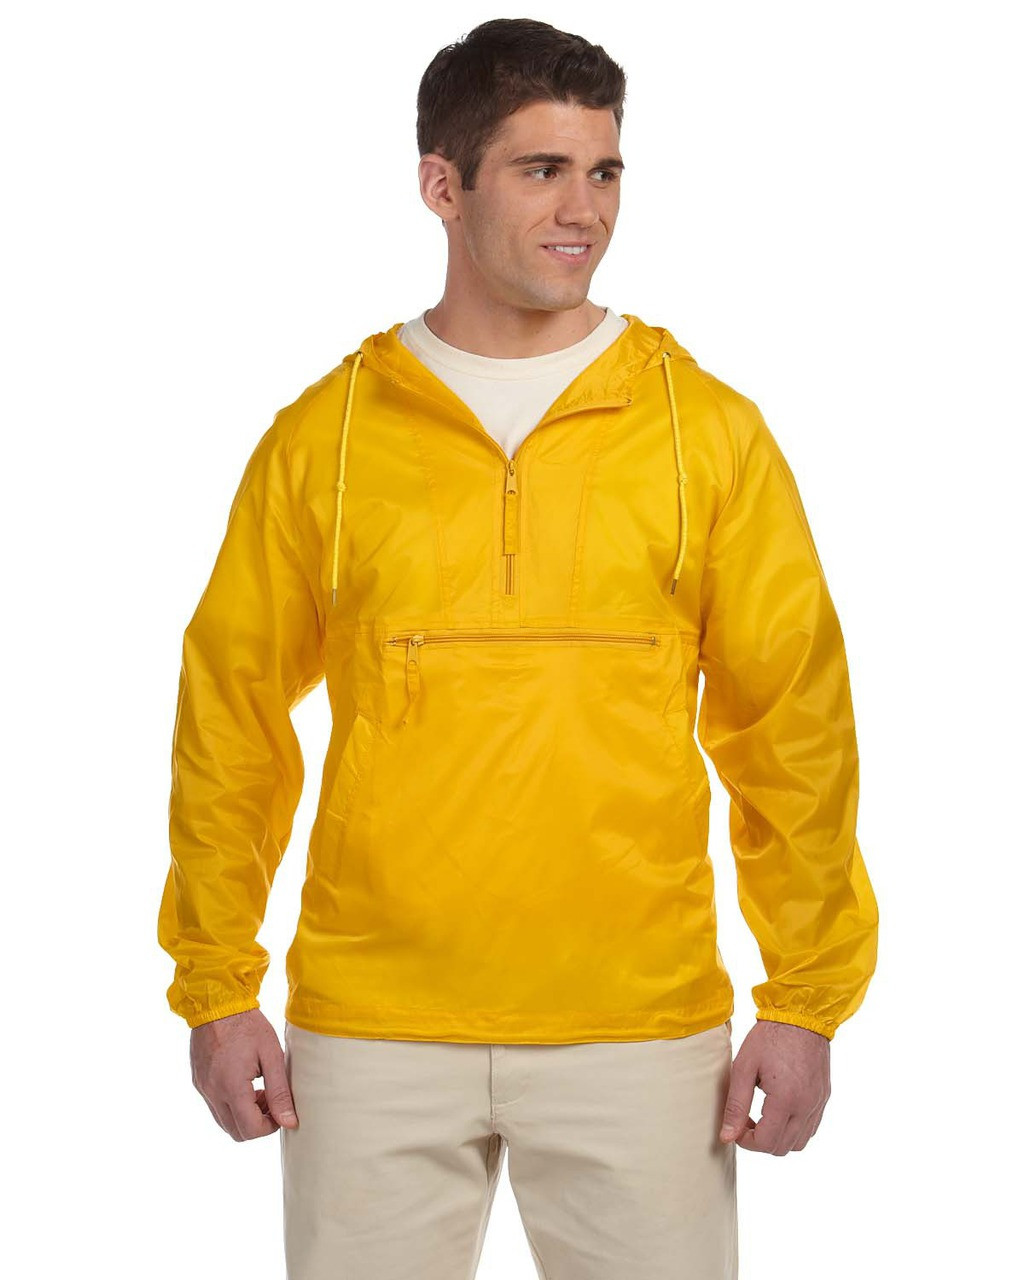 Sunray Yellow - M750 Packable Nylon Jacket